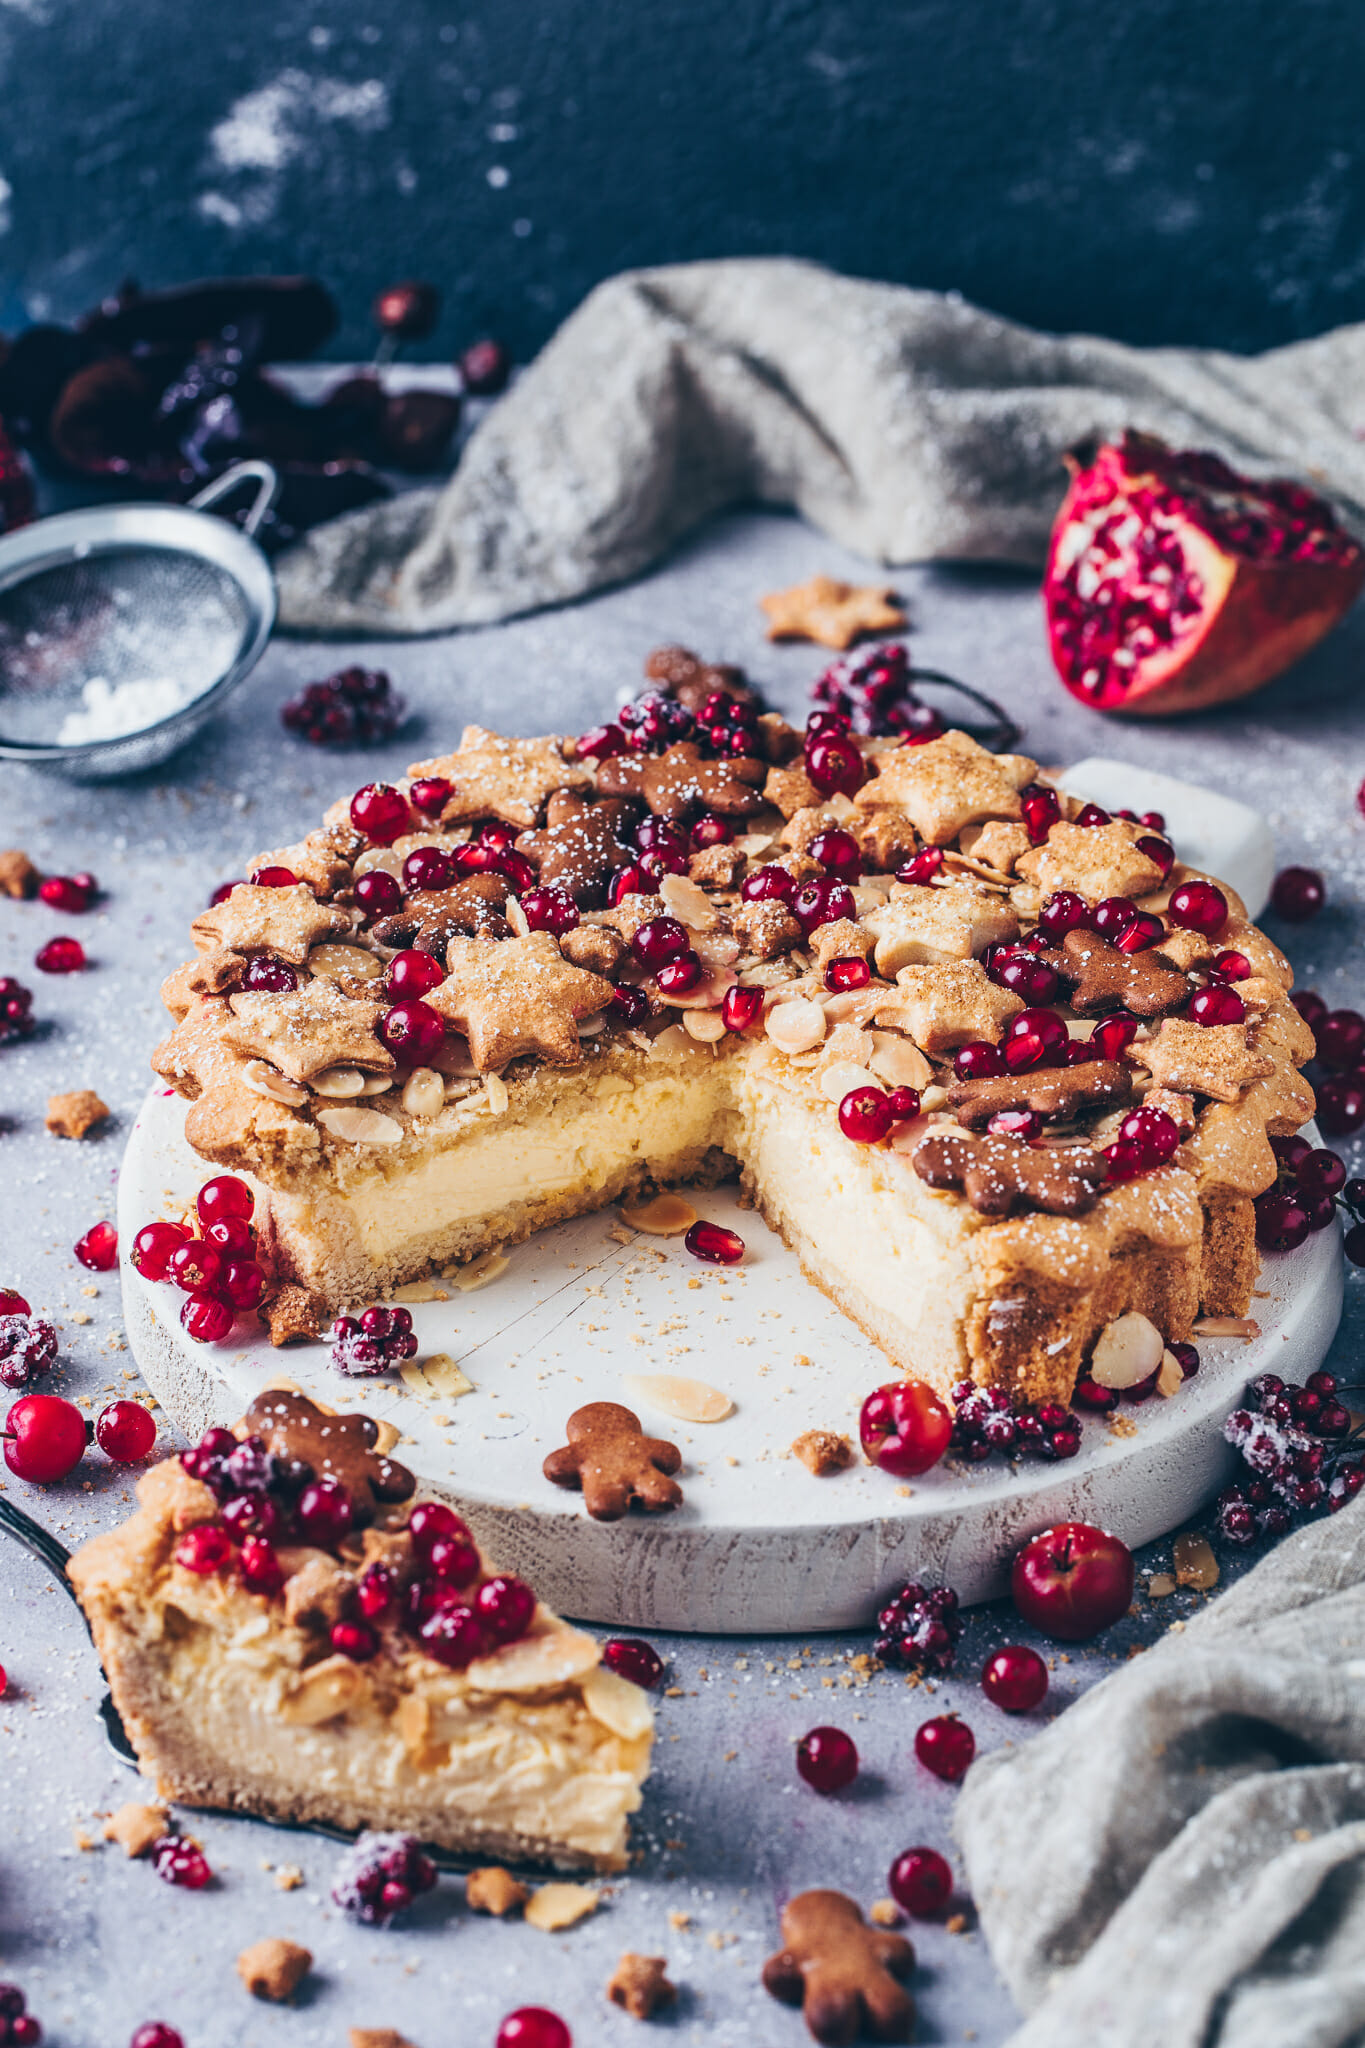 Custard Cream Pie Tart with Cookies and pomegranate